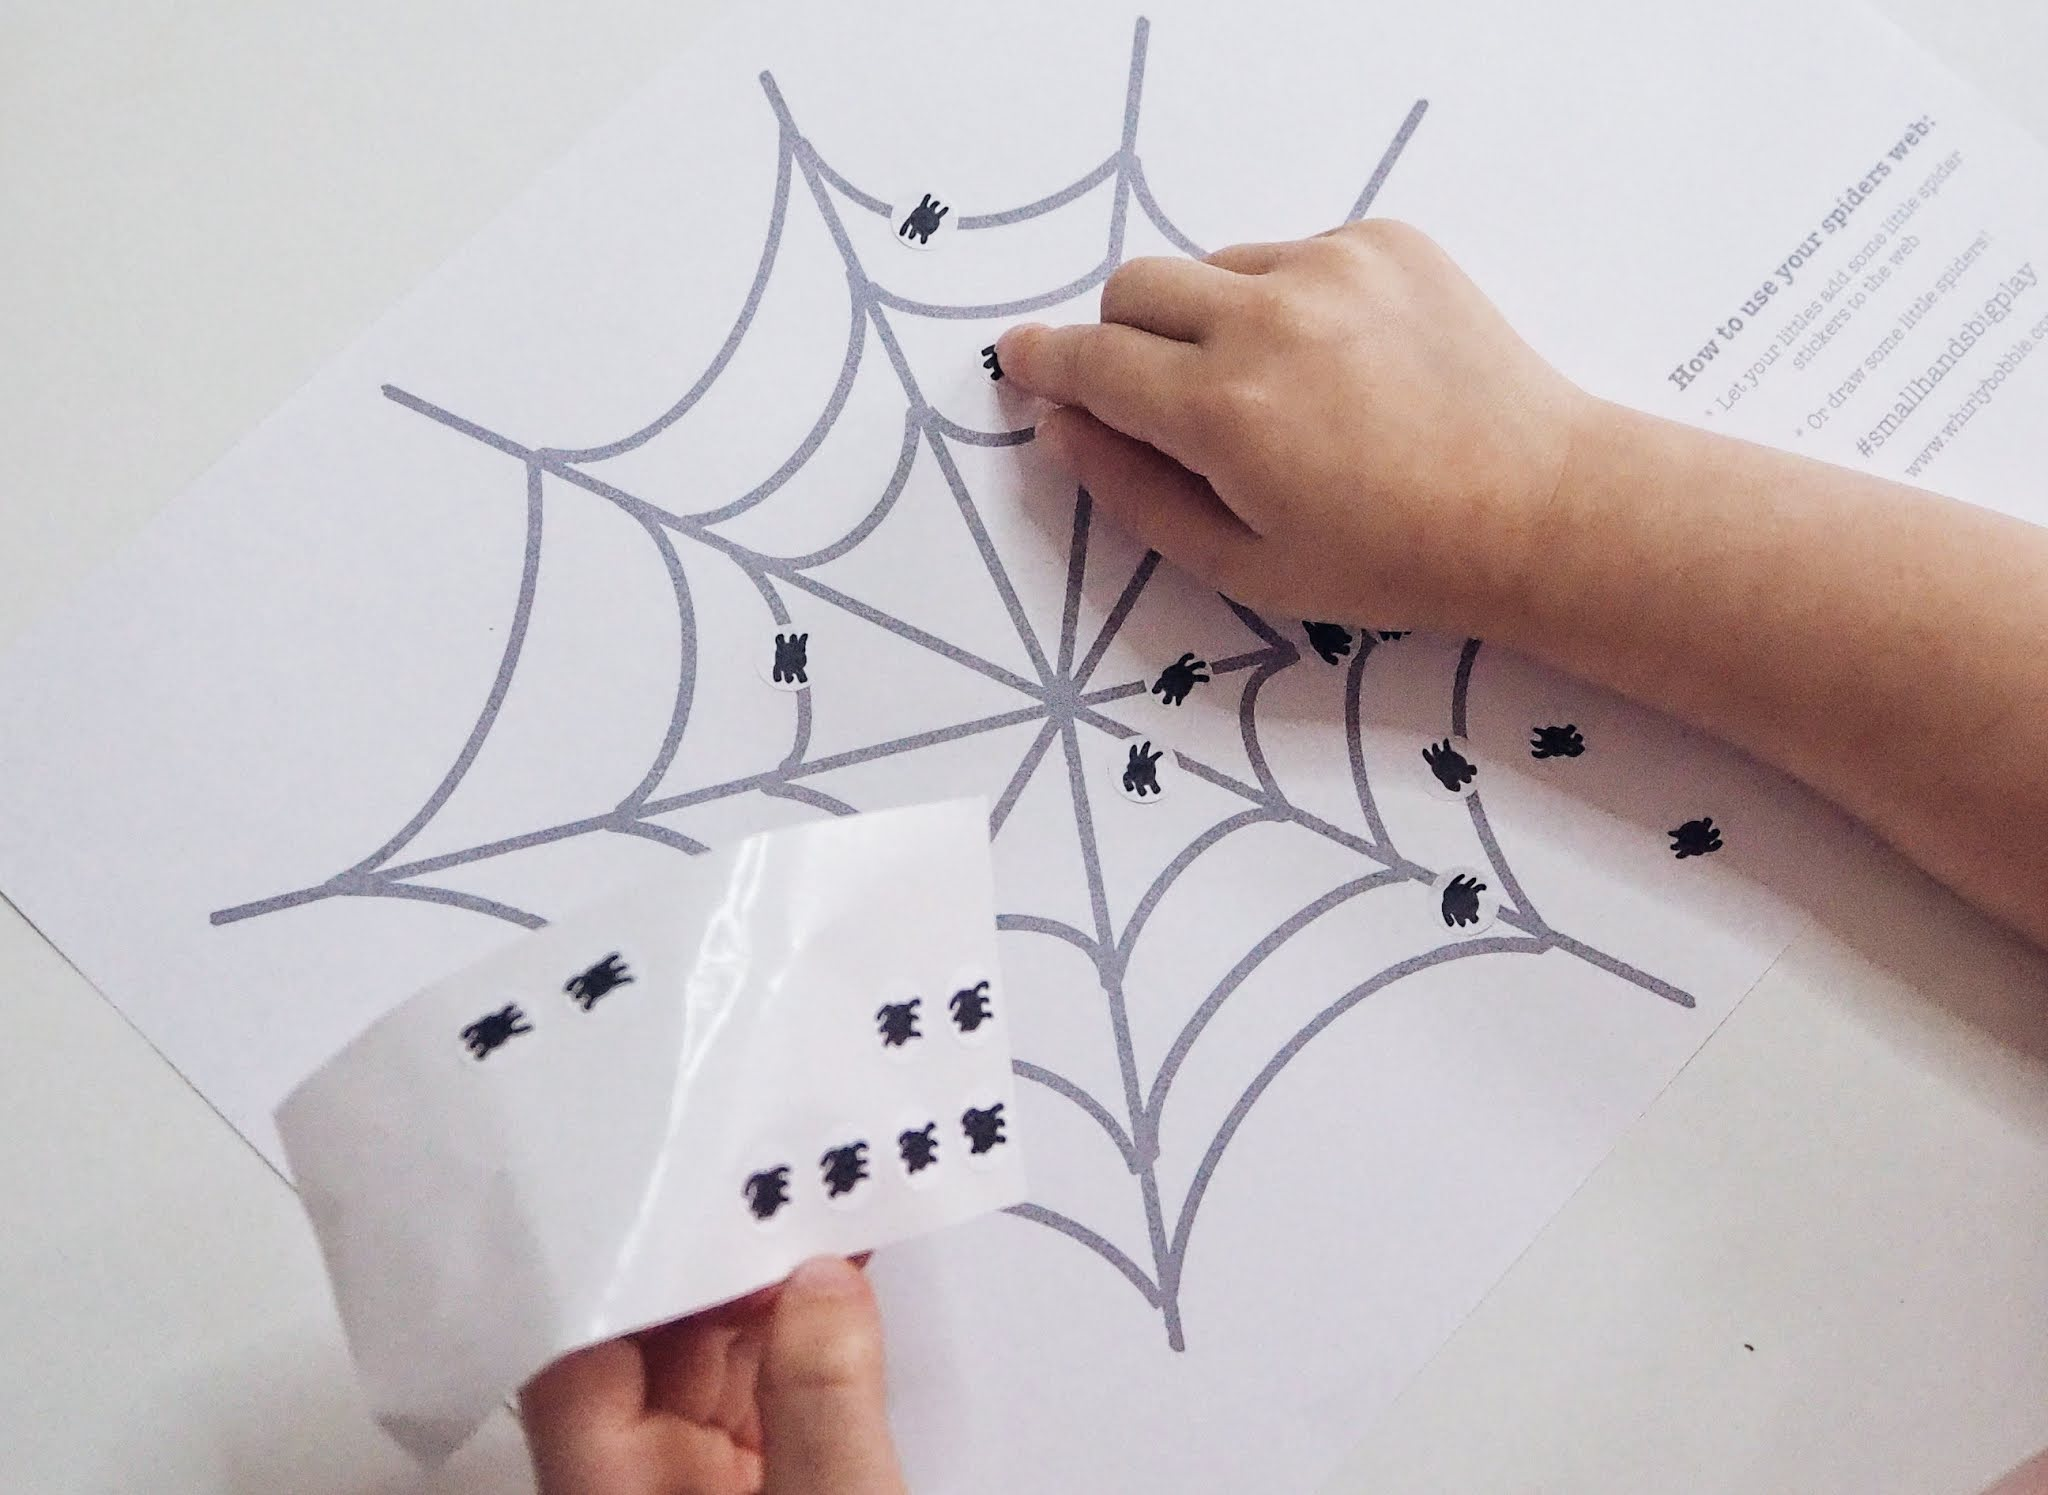 spider web sticking activity